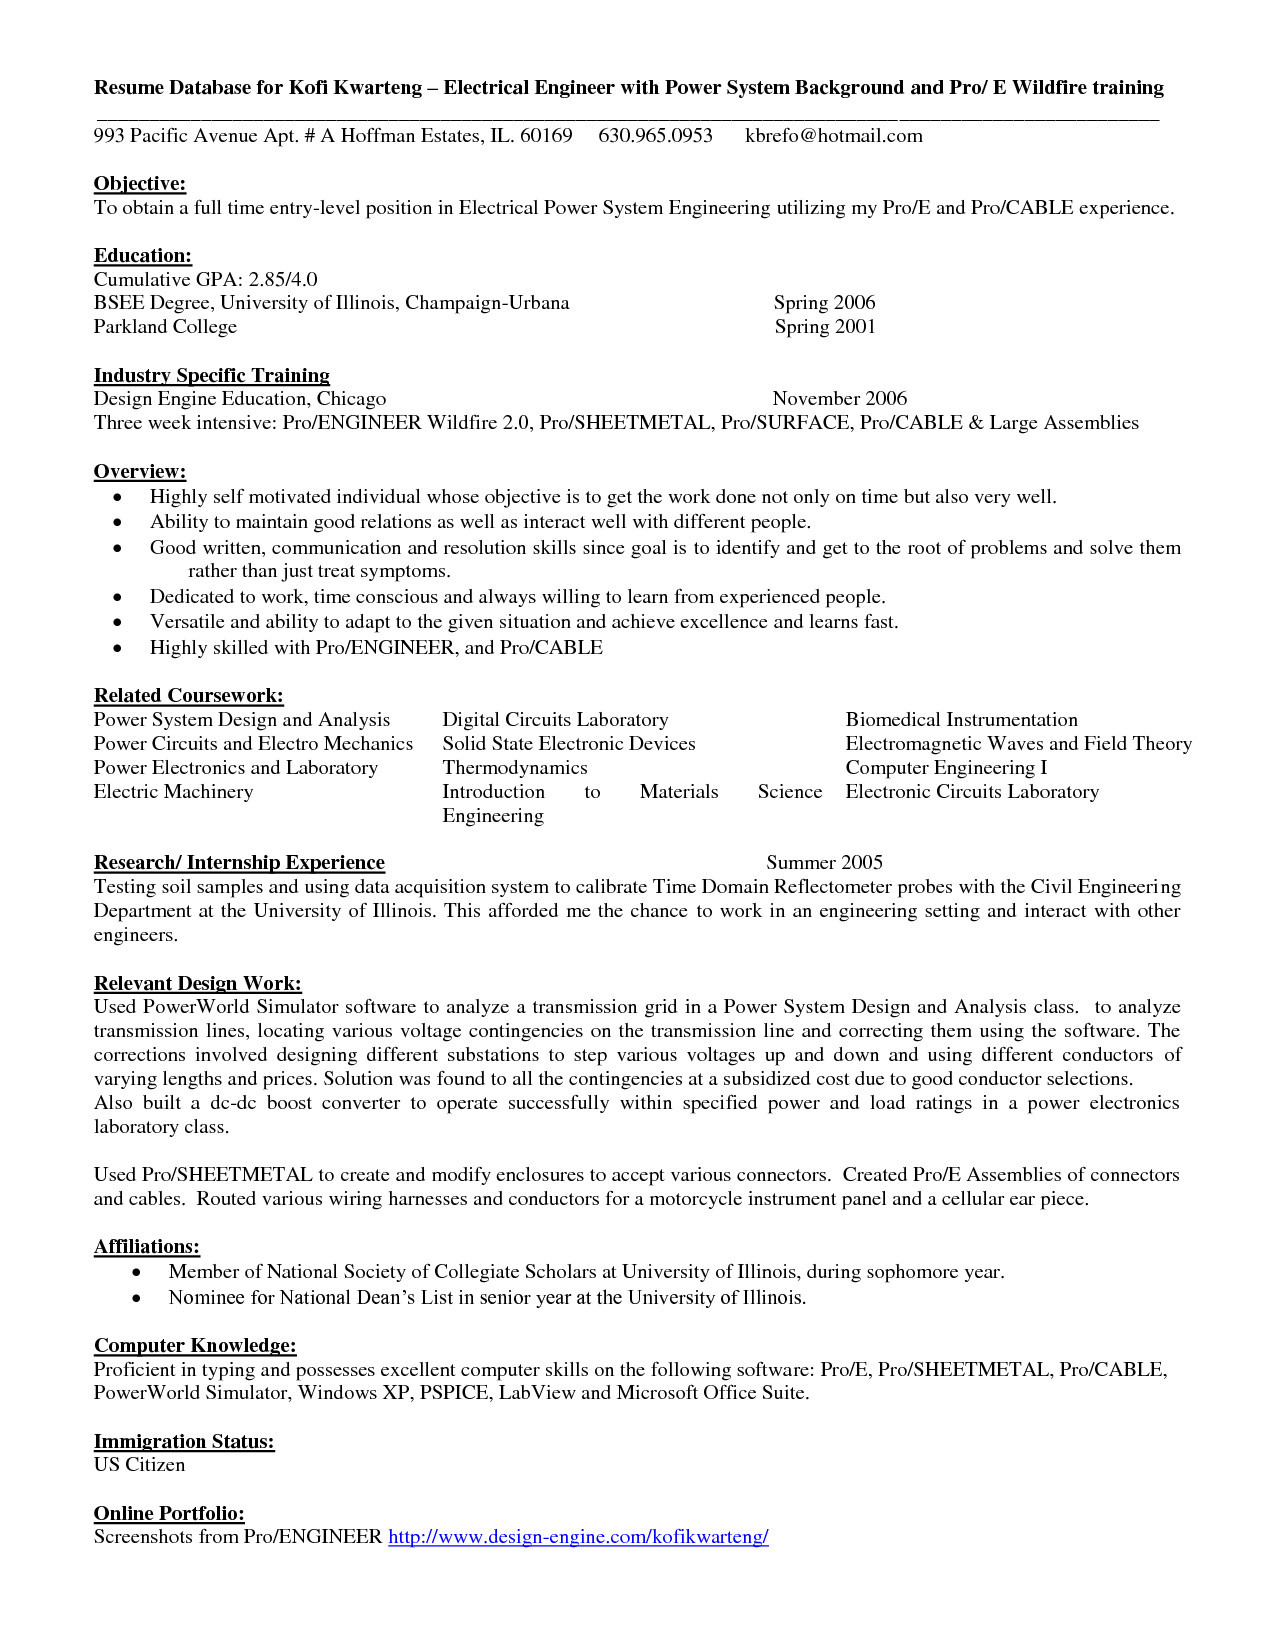 Entry Level Electrical Engineer Resume - Electrical Engineer Resume Word format Sample Pdf Sample Resume for